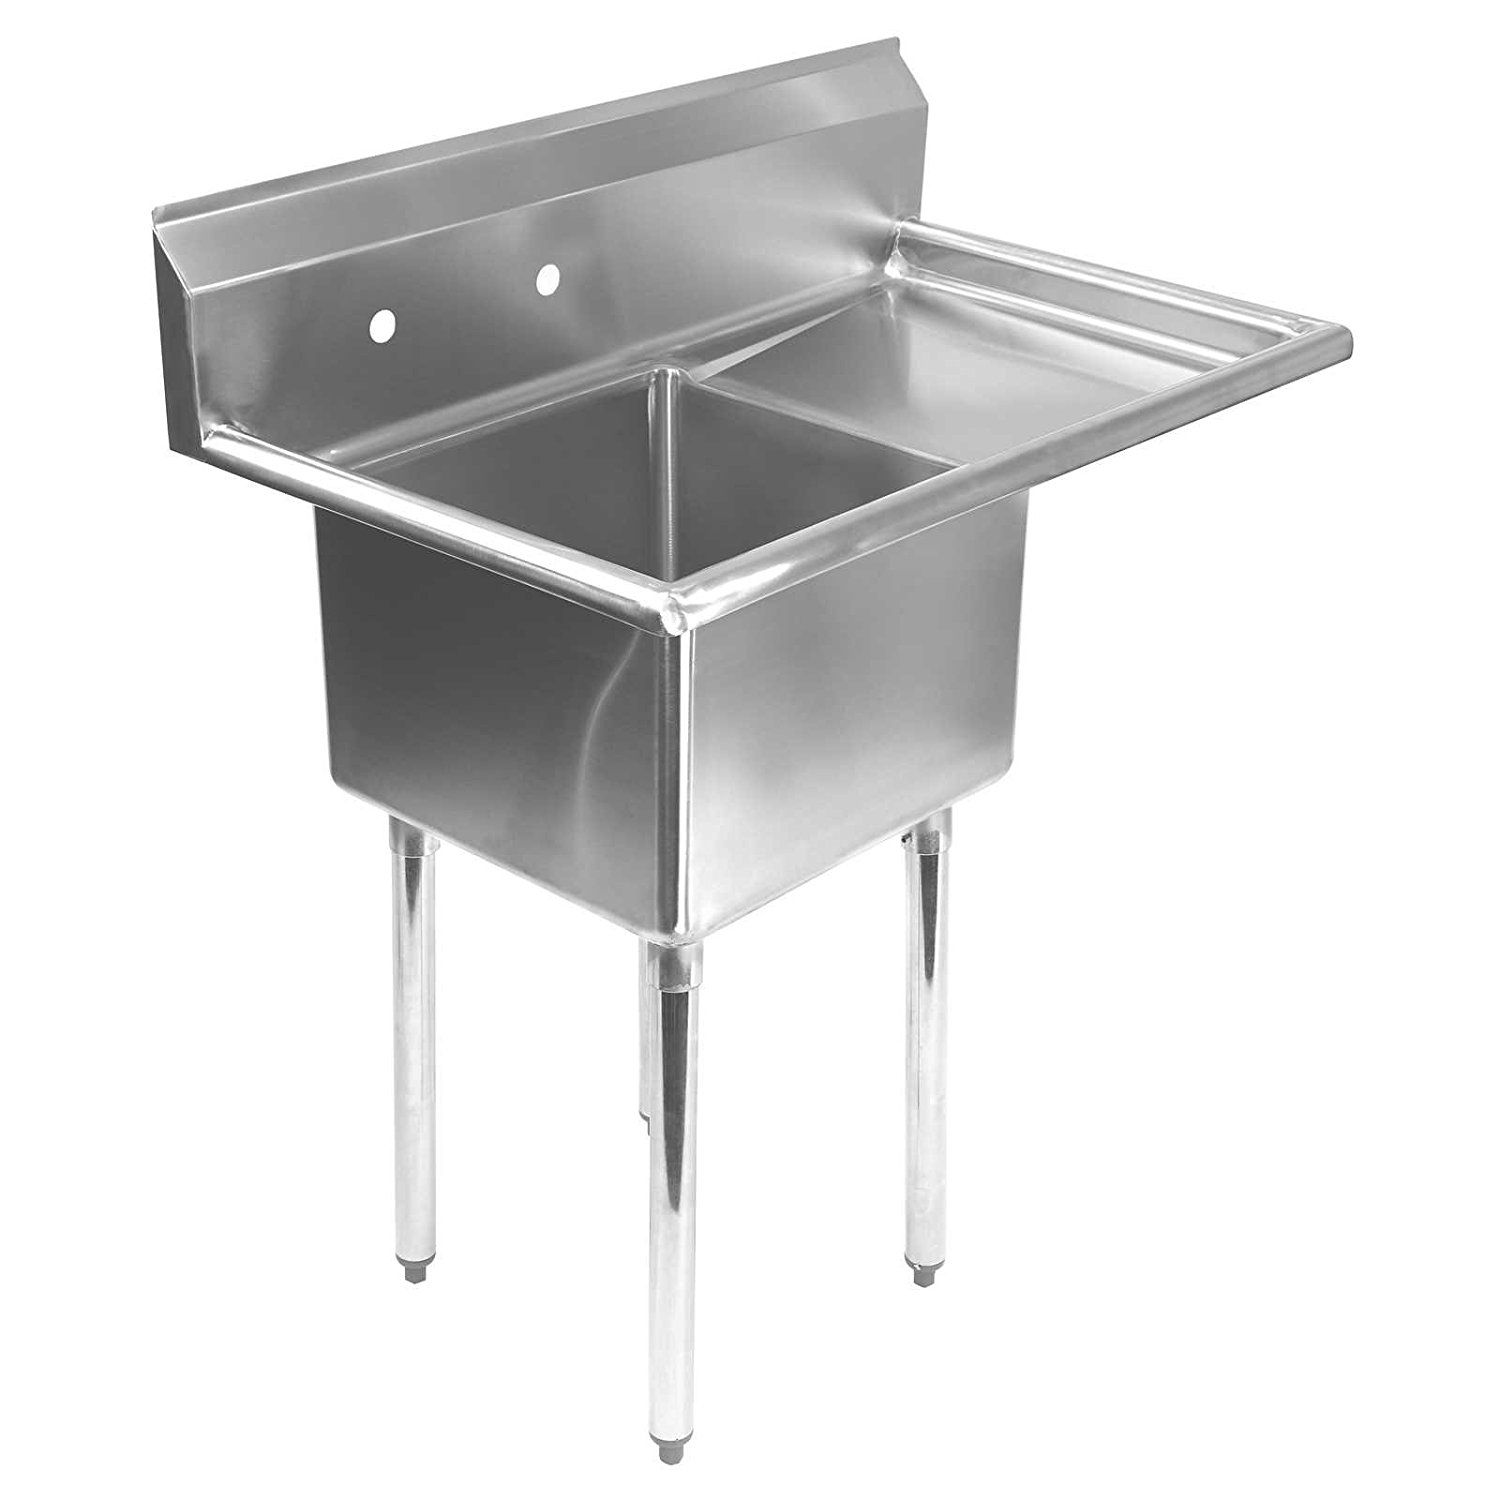 Gridmann 1 partment NSF Stainless Steel mercial Kitchen Prep